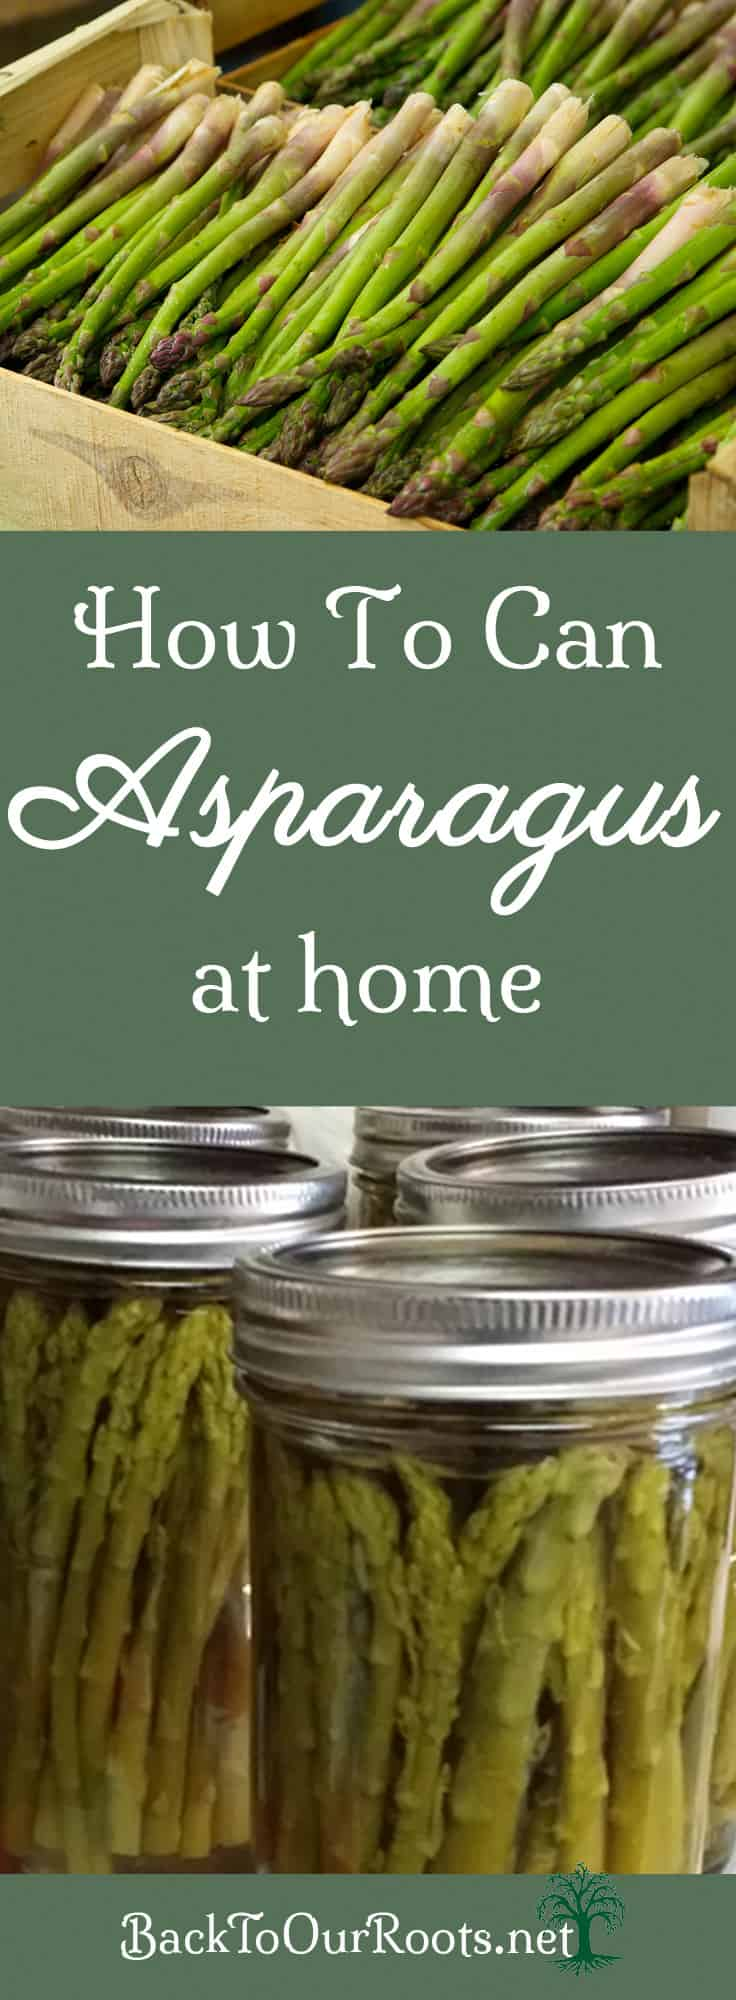 How To Can Asparagus at Home